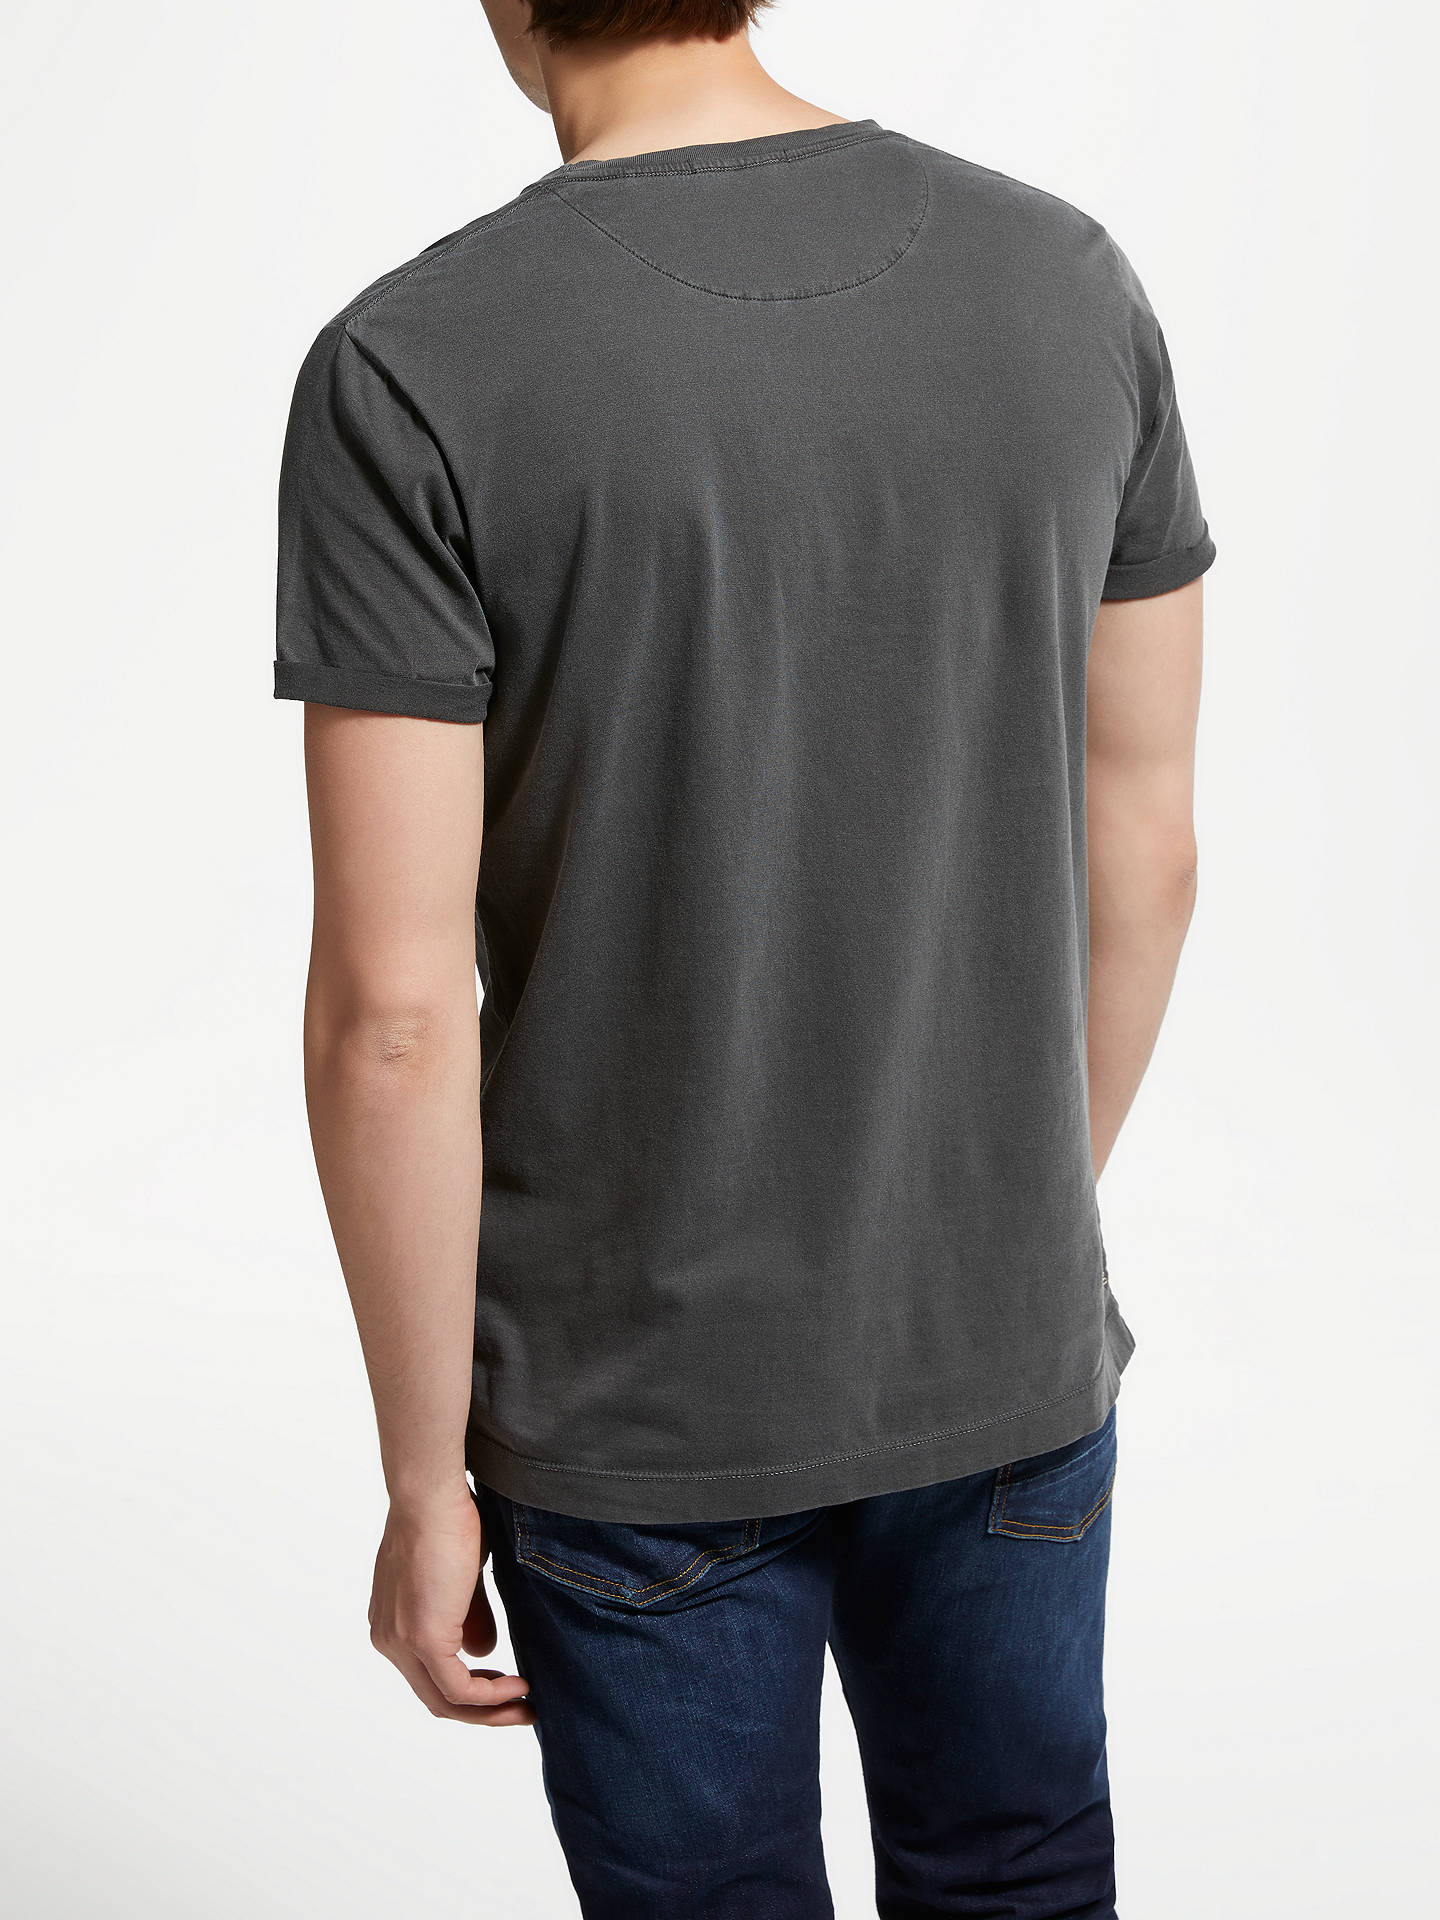 BuyScotch & Soda Right Here Graphic T-Shirt, Washed Black, XL Online at johnlewis.com